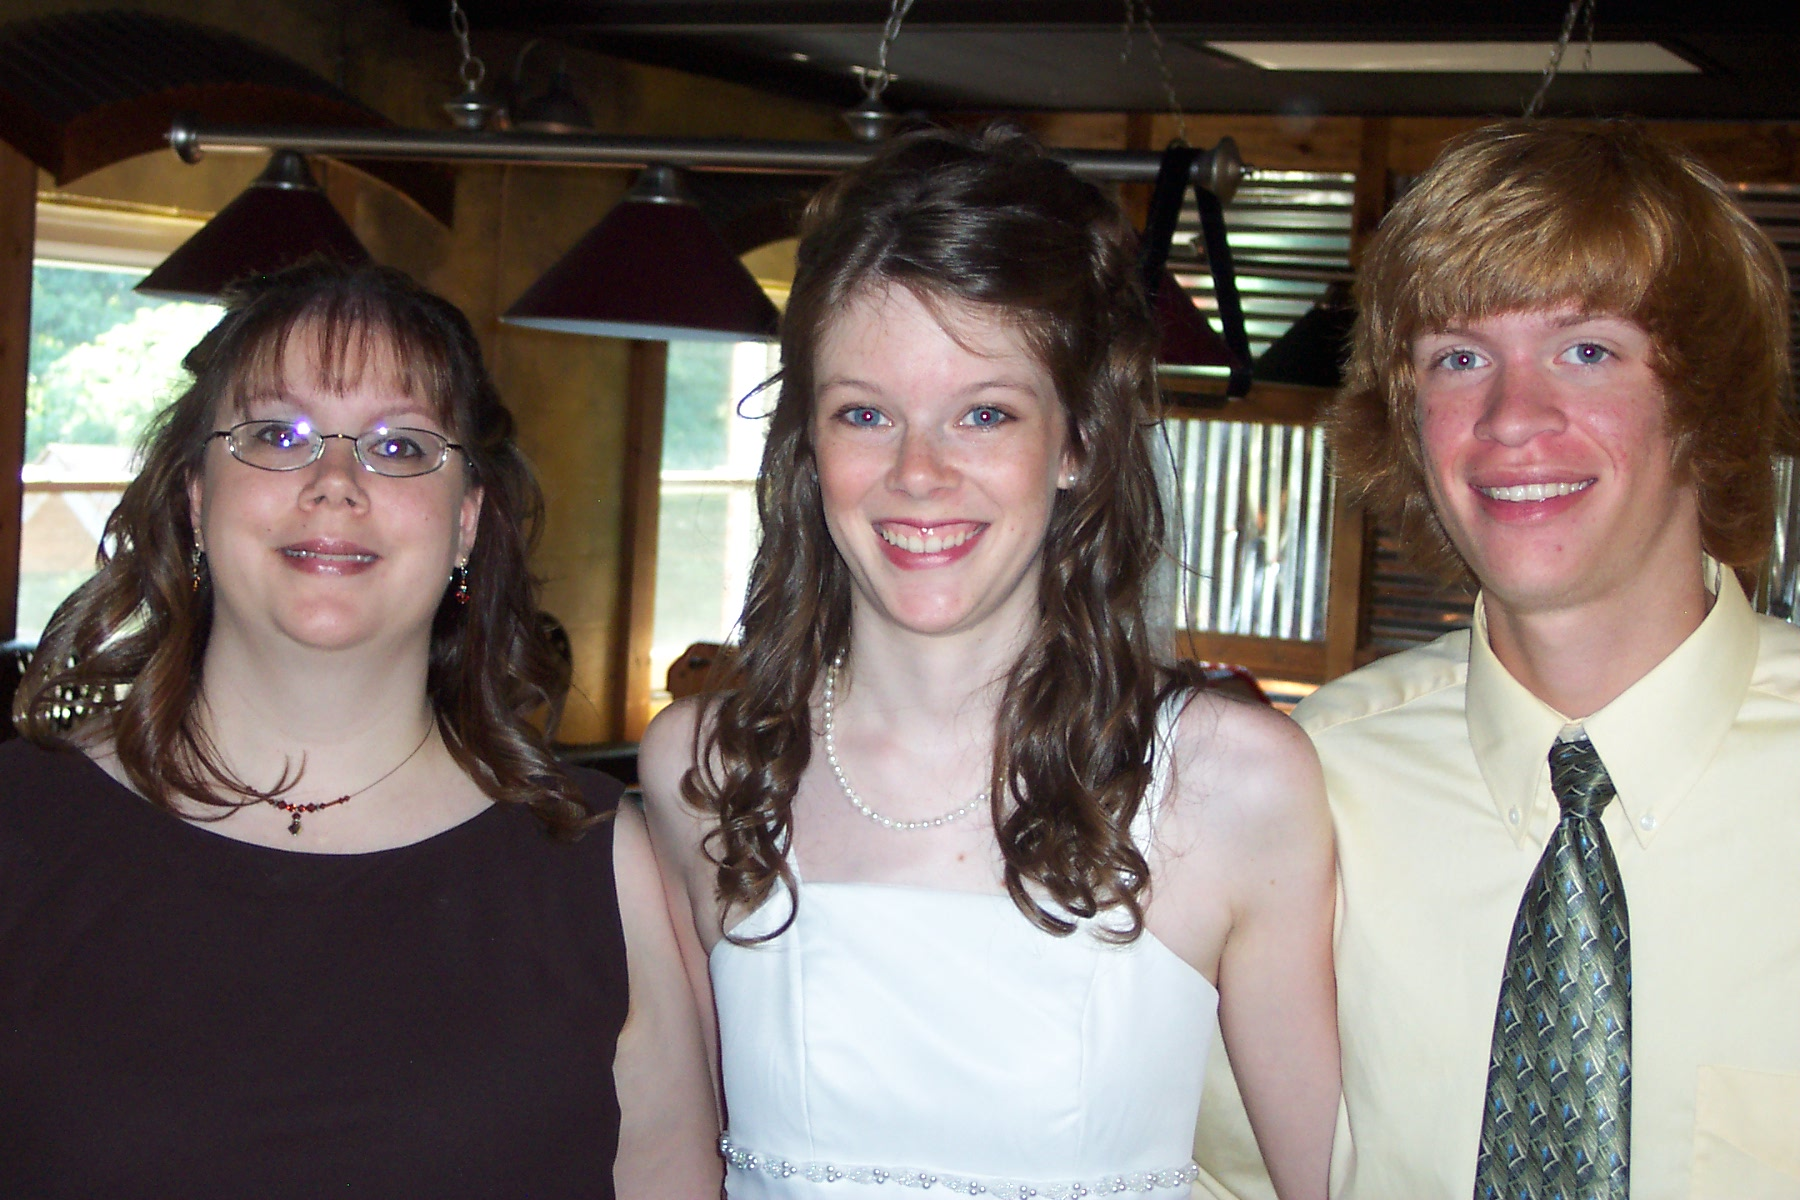 My favorite picture of me and my siblings! Taken right before the service began.